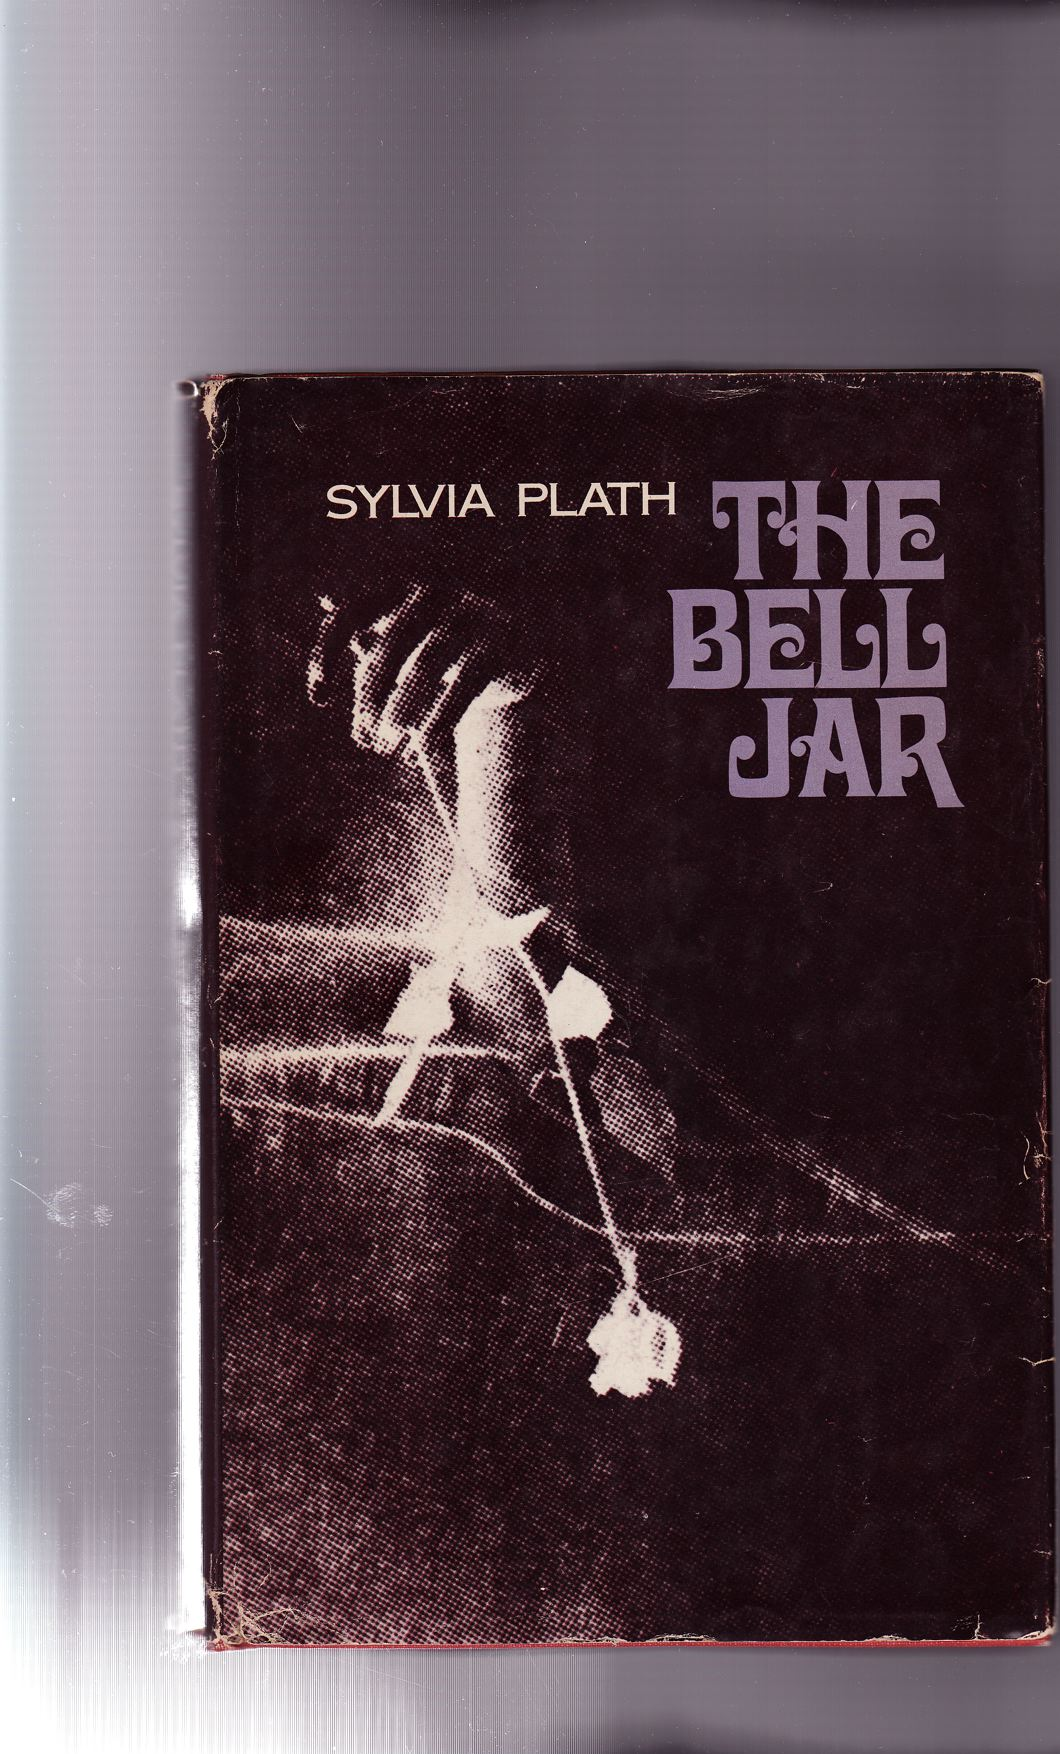 the maine bookhouse quality books oxford maine collections the bell jar plath sylvia biographical notes by lois ames 1971 harper row new york book club edition this is not an ex library book binding is red